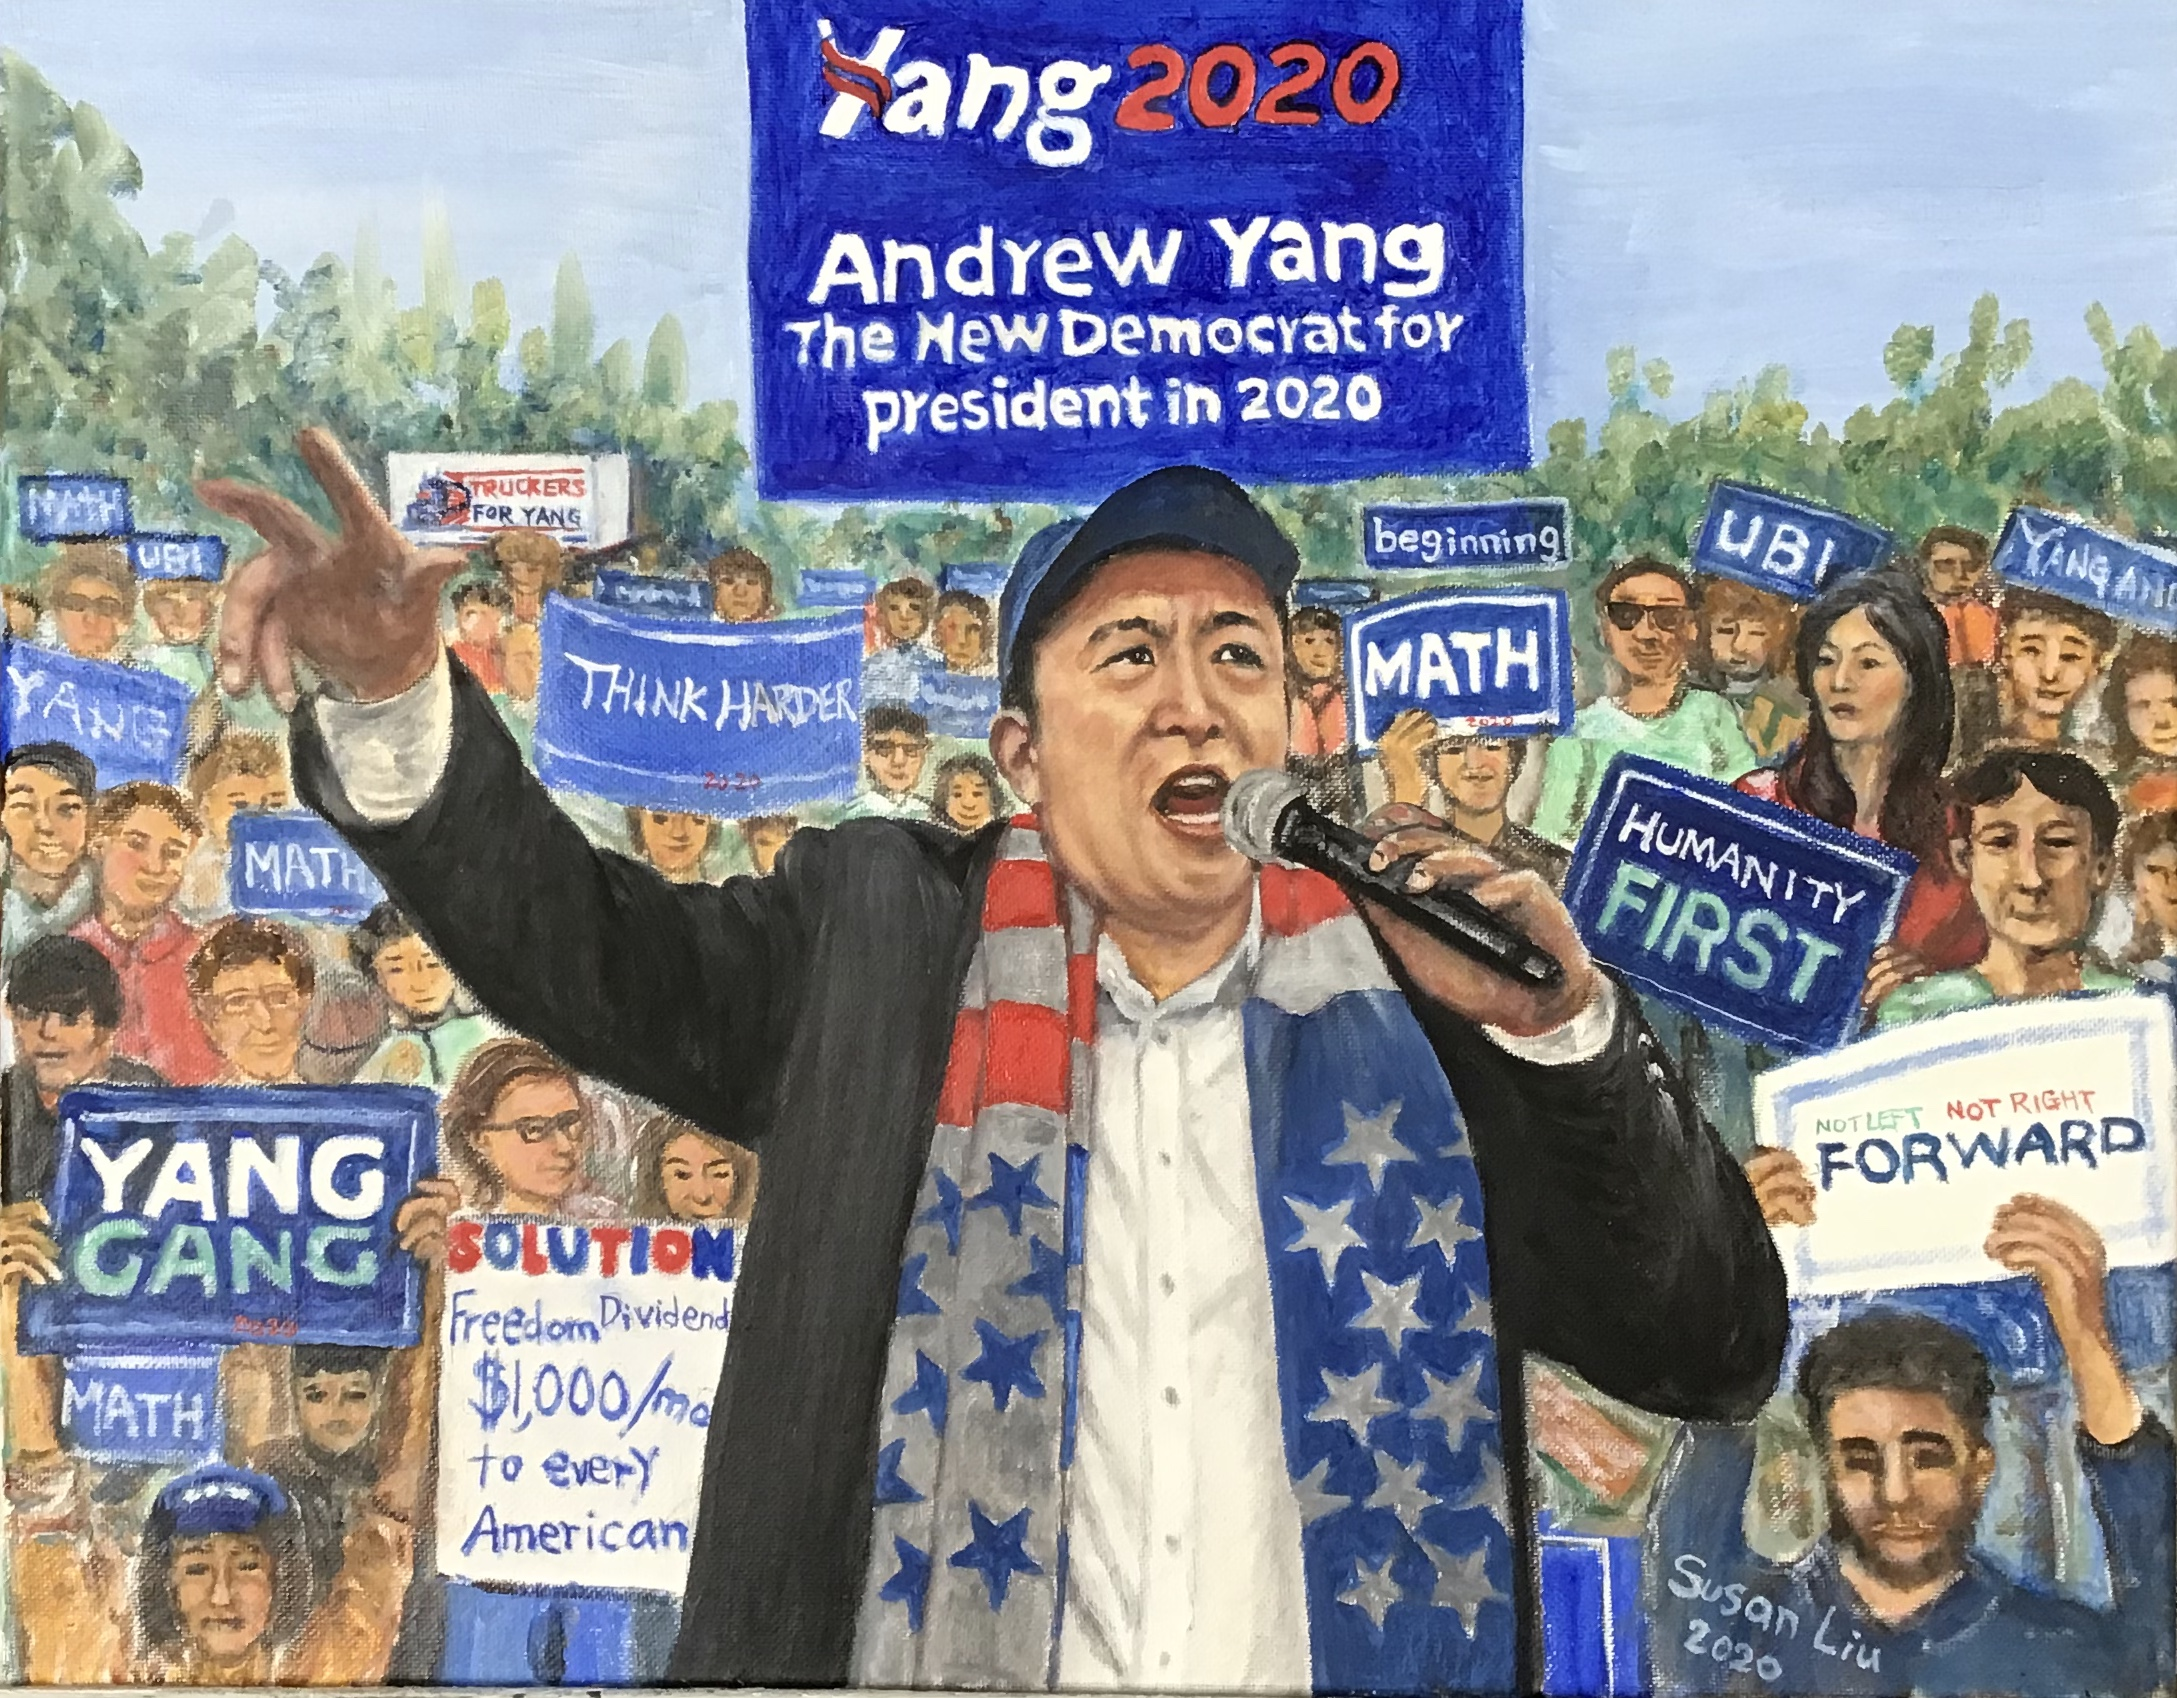 31. Andrew Yang in 2020 U. S. Presidential Election By Artist Susan Hsiu-fang Liu(陳秀芳)/2020